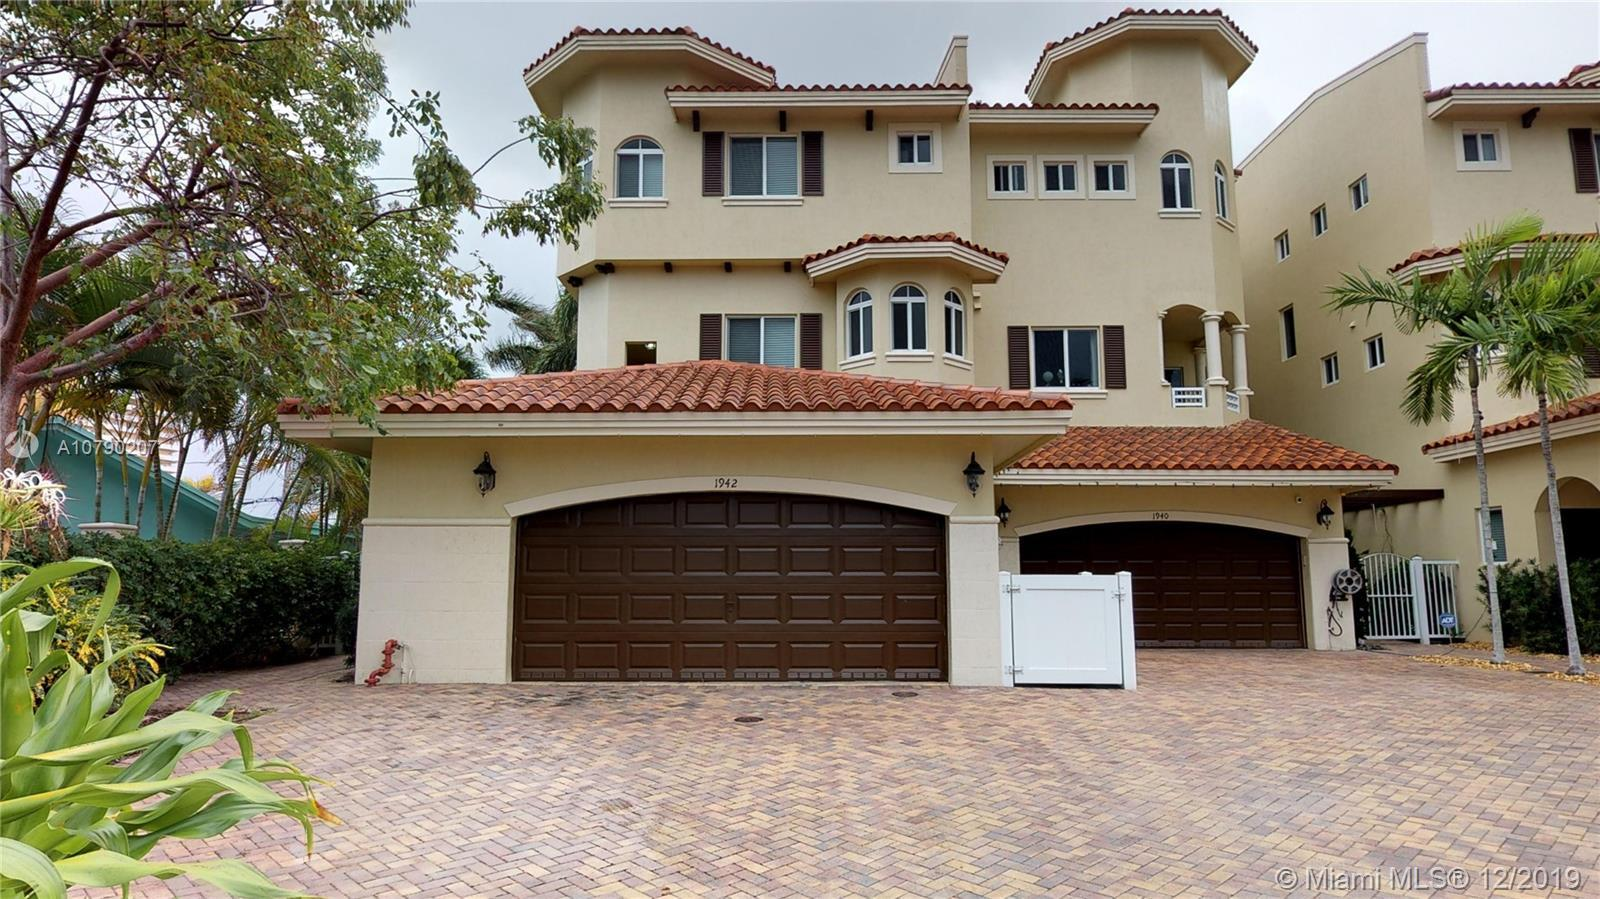 Townhome located in a beautiful community, walking distance to the beach. 3 bedrooms 4 full bathroom